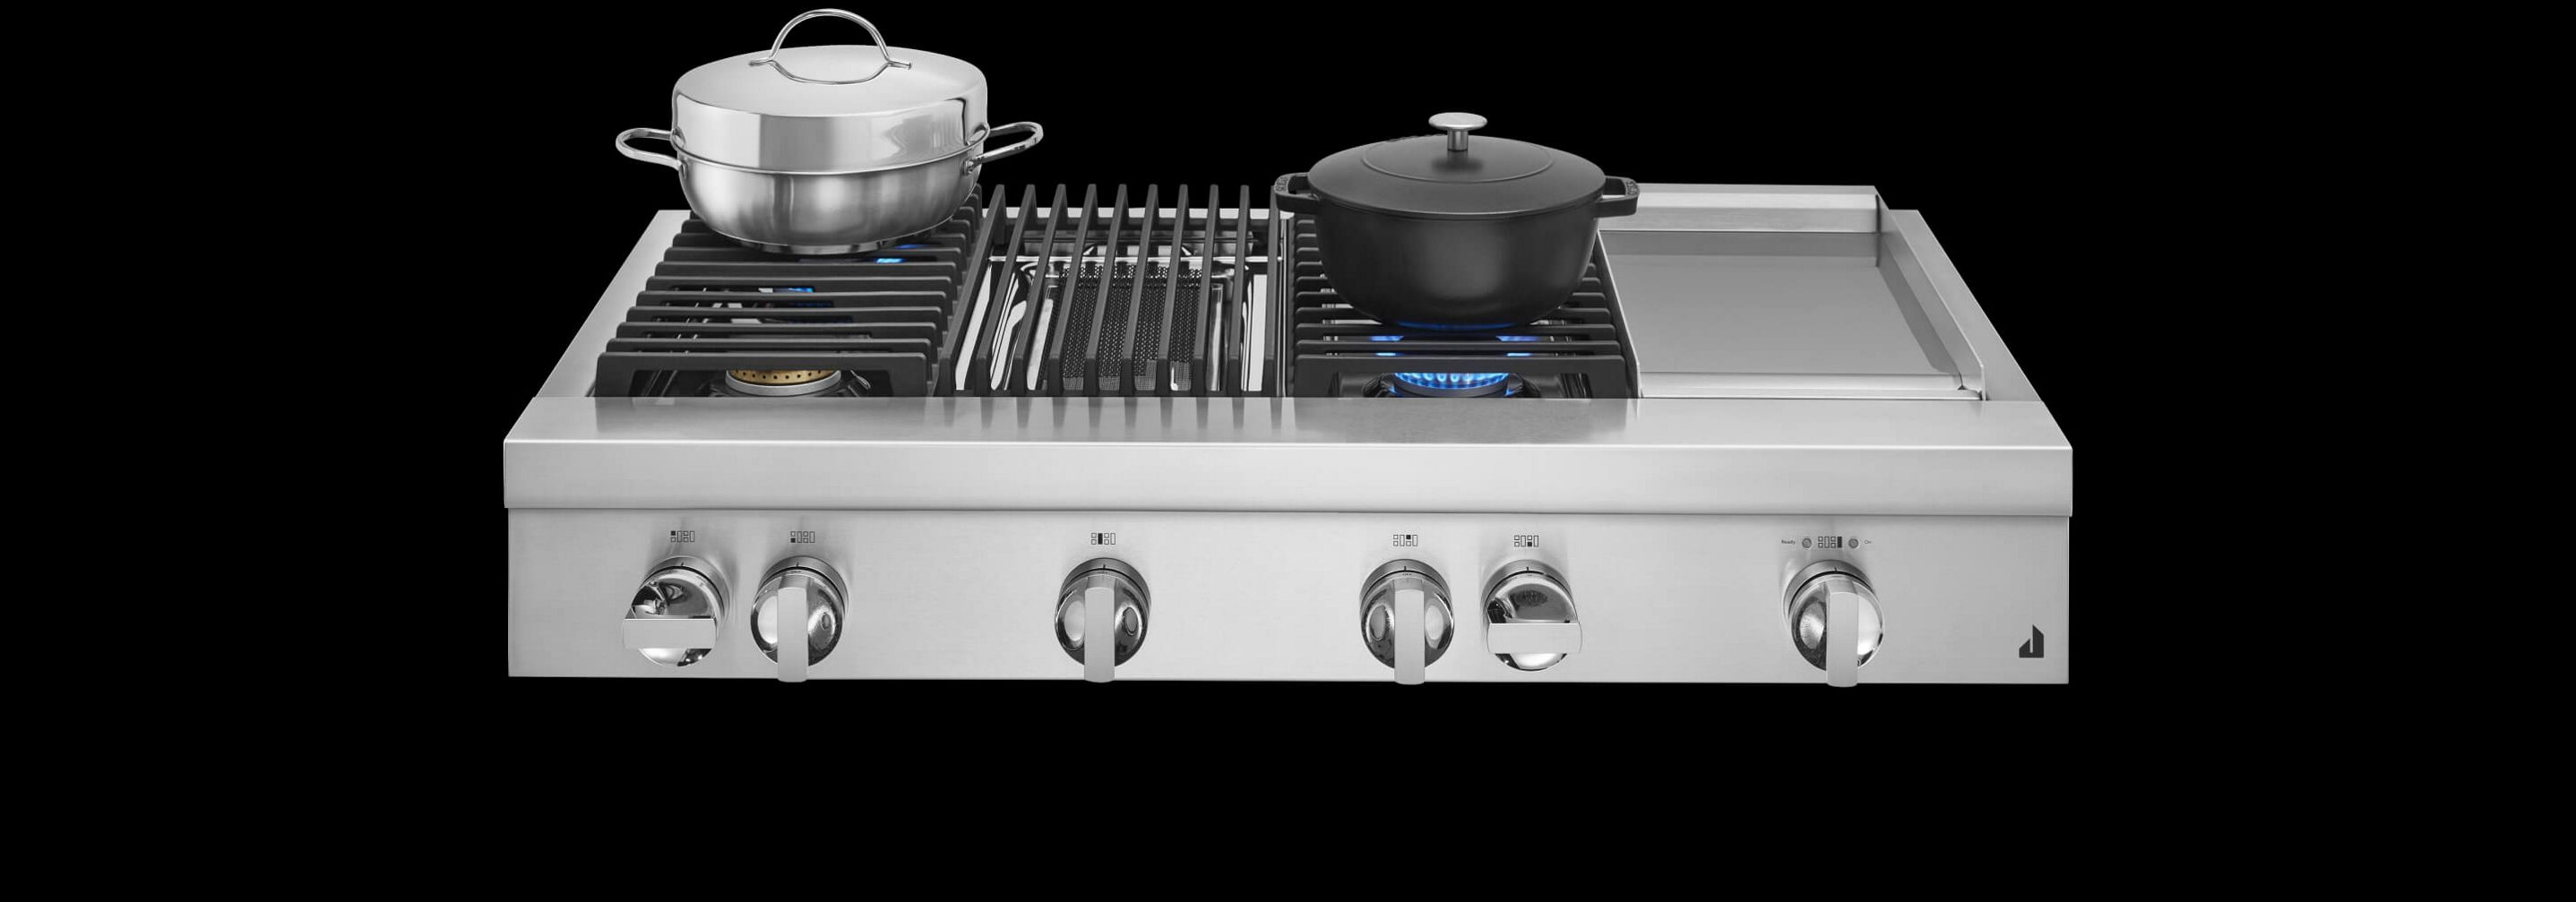 A JennAir® Professional-Style Range in NOIR™ Design, with stainless steel and cast iron pans atop lit burners.